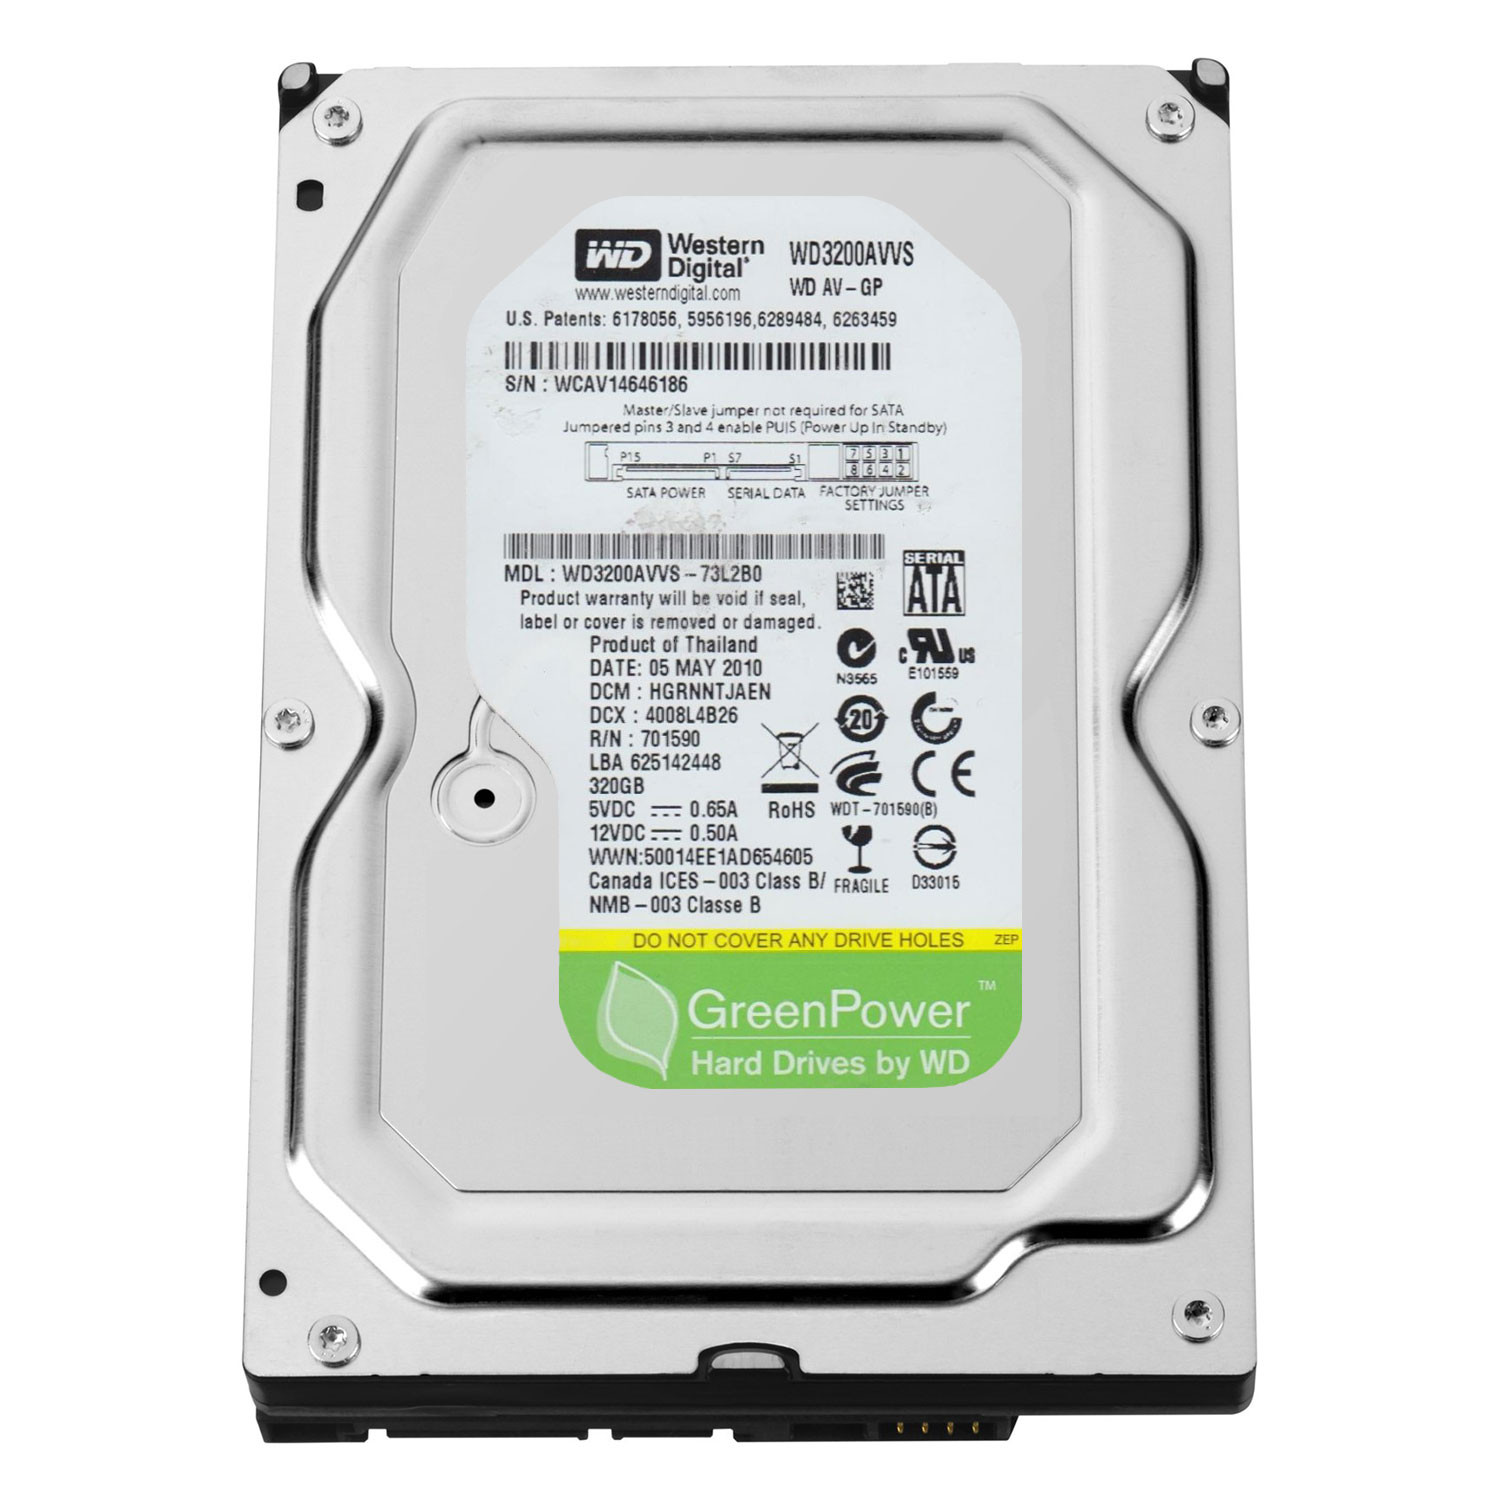 320Gb WD3200AVVS AV-GP SATA-II IntelliPower, 300MB/sec, 8MB cache